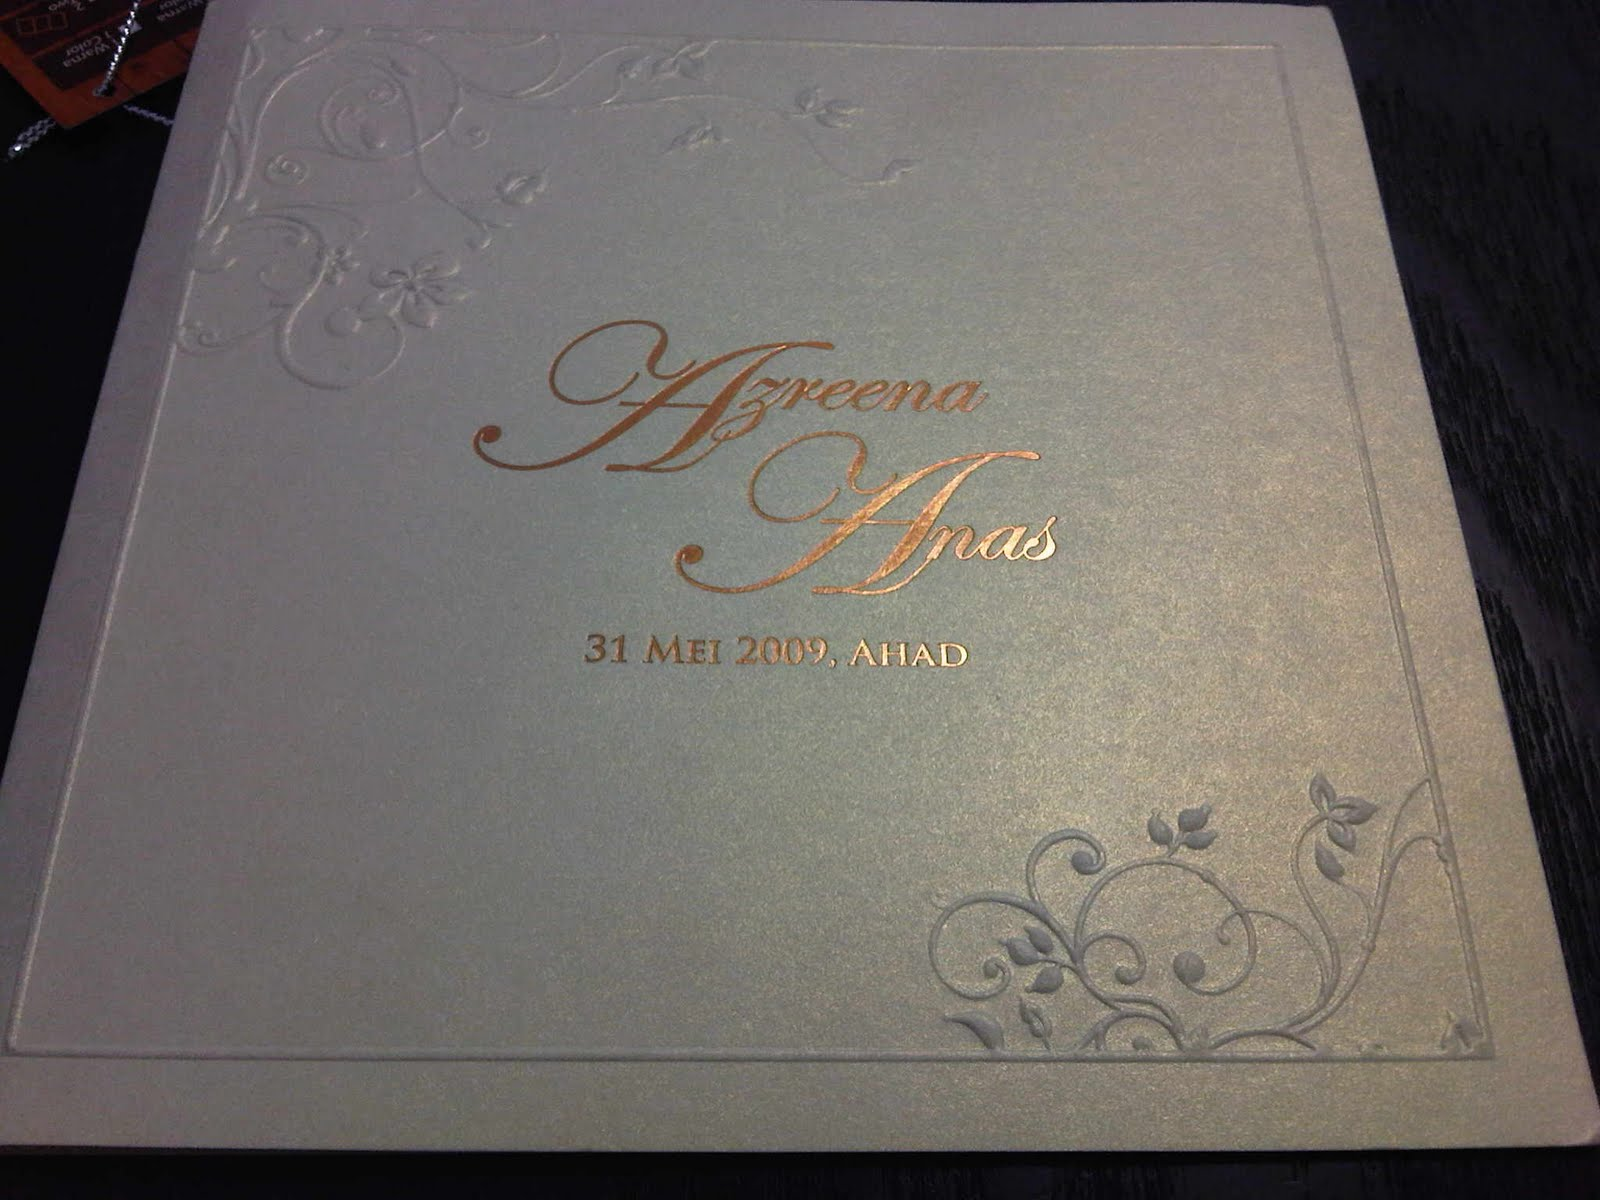 Confessions of a shopaholic wedding invitation cards well not yet my card because i still have to re confirm the aturcara majlis with the card designer so this whole card printing thing is still in progress stopboris Choice Image